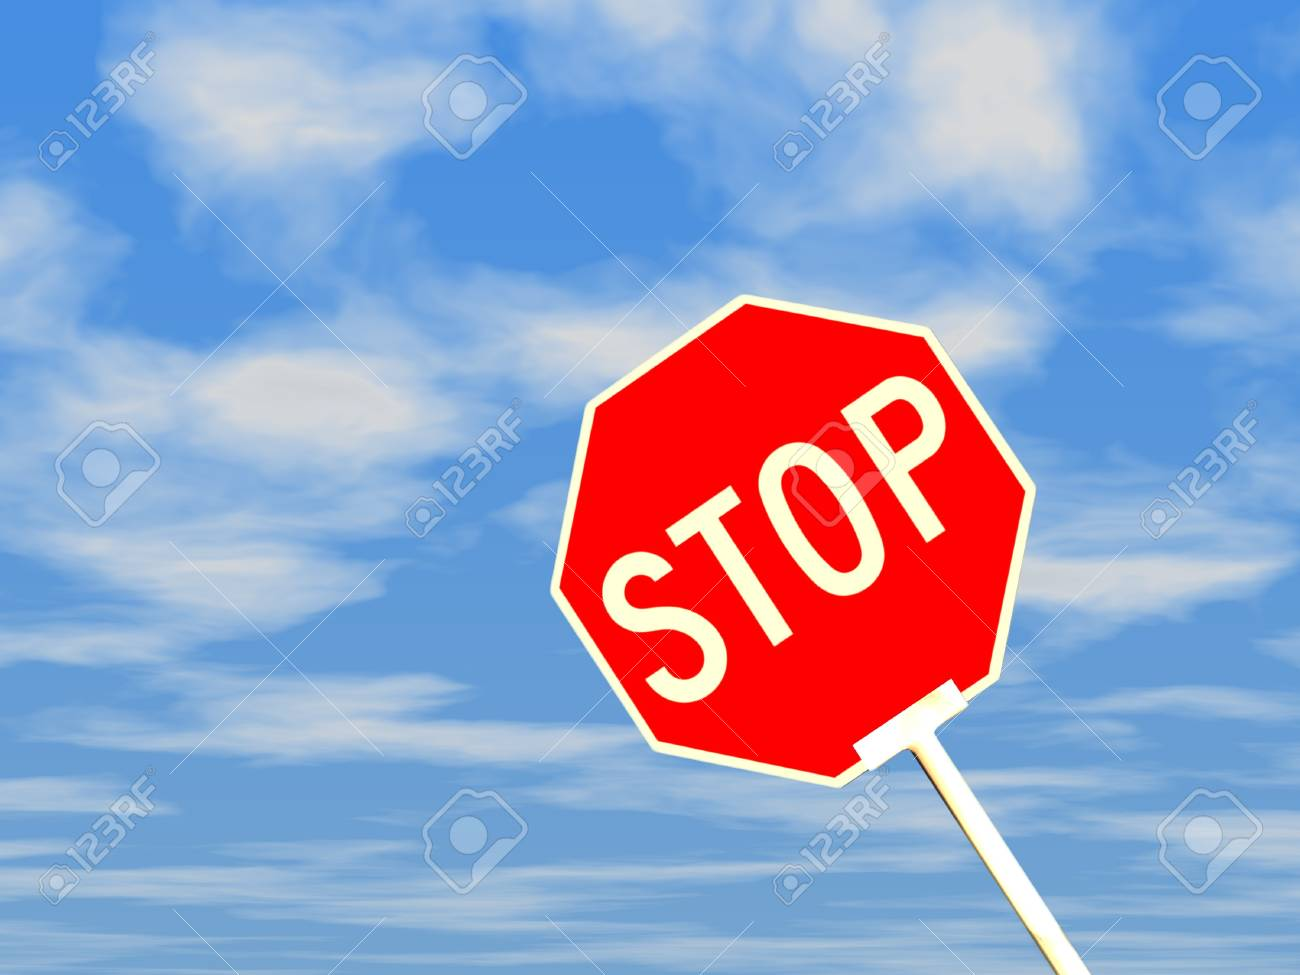 3d stop sign against blue sky and white clouds. Stock Photo - 16292053